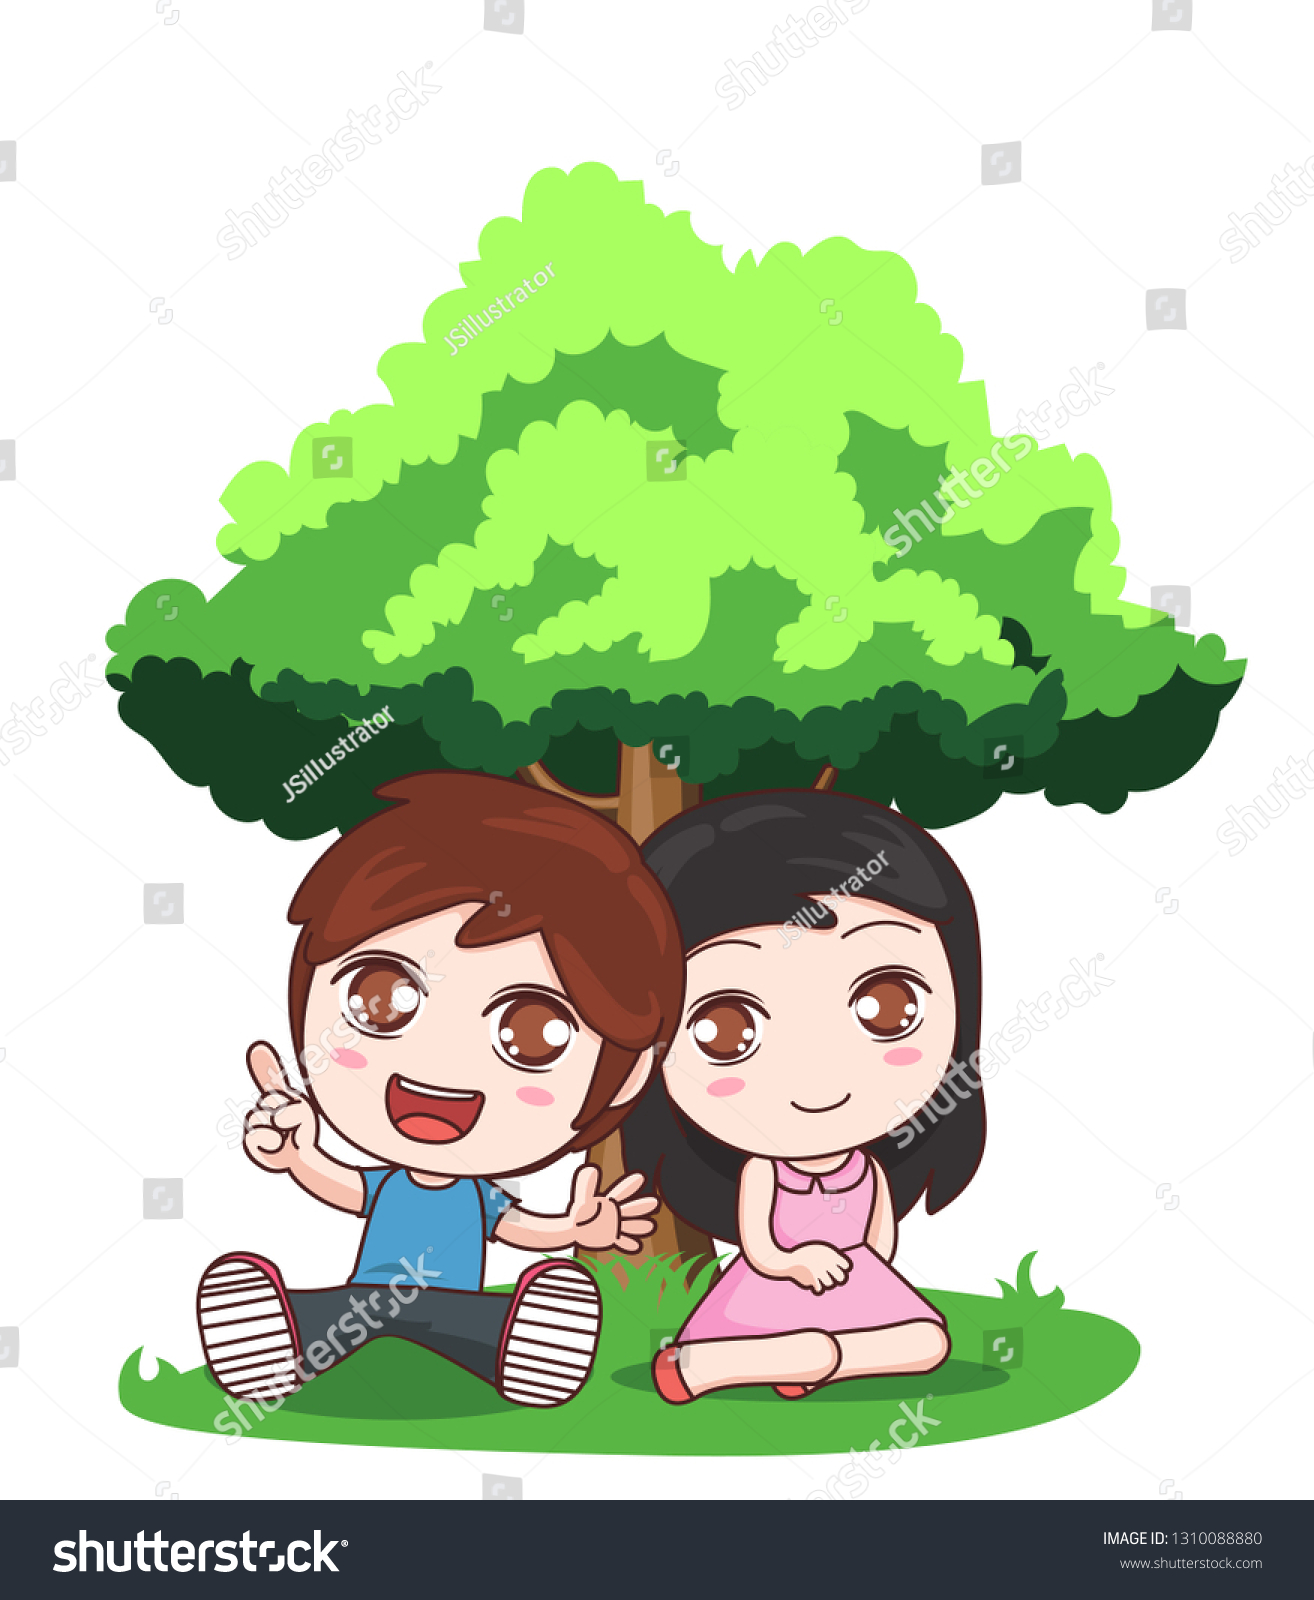 Couple Sitting Under Tree Lover Cartoon Stock Vector Royalty Free 1310088880 Children reading cartoon pictures » dondrup.com. https www shutterstock com image vector couple sitting under tree lover cartoon 1310088880